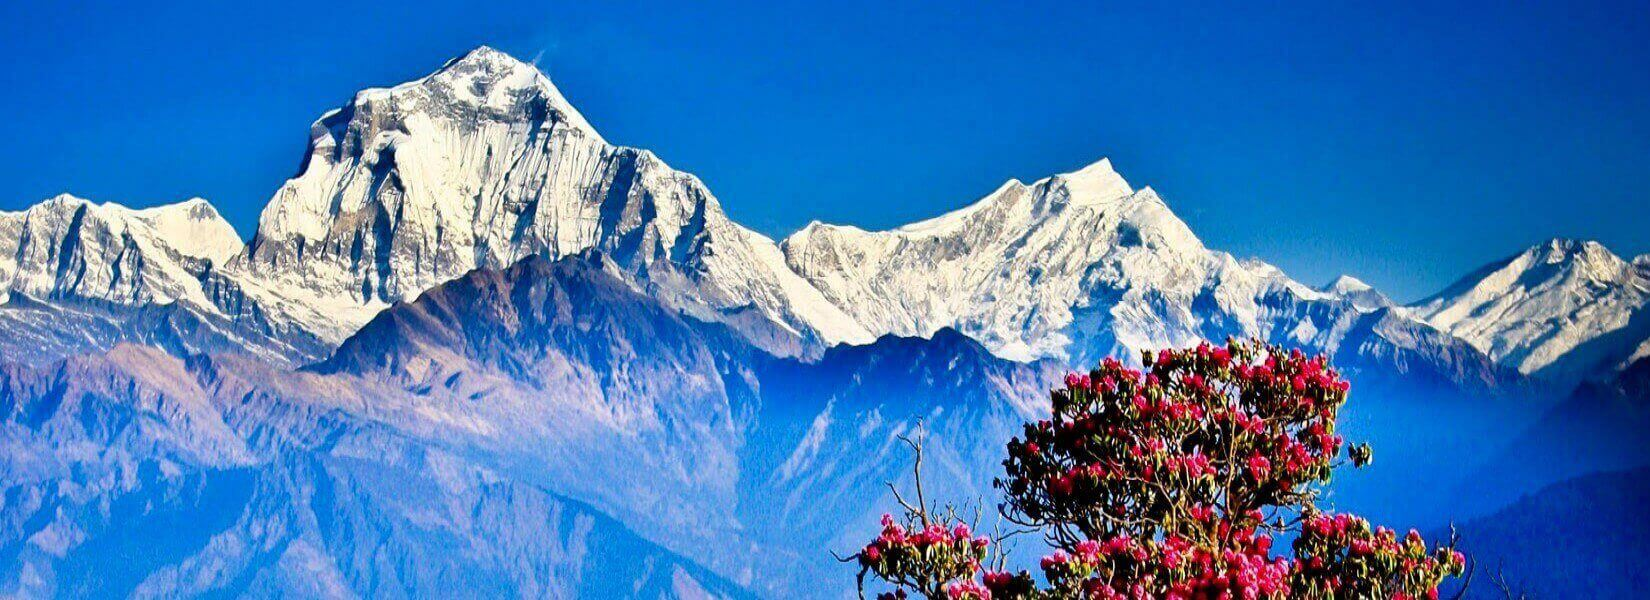 Mount Dhaulagiri From Poonhill